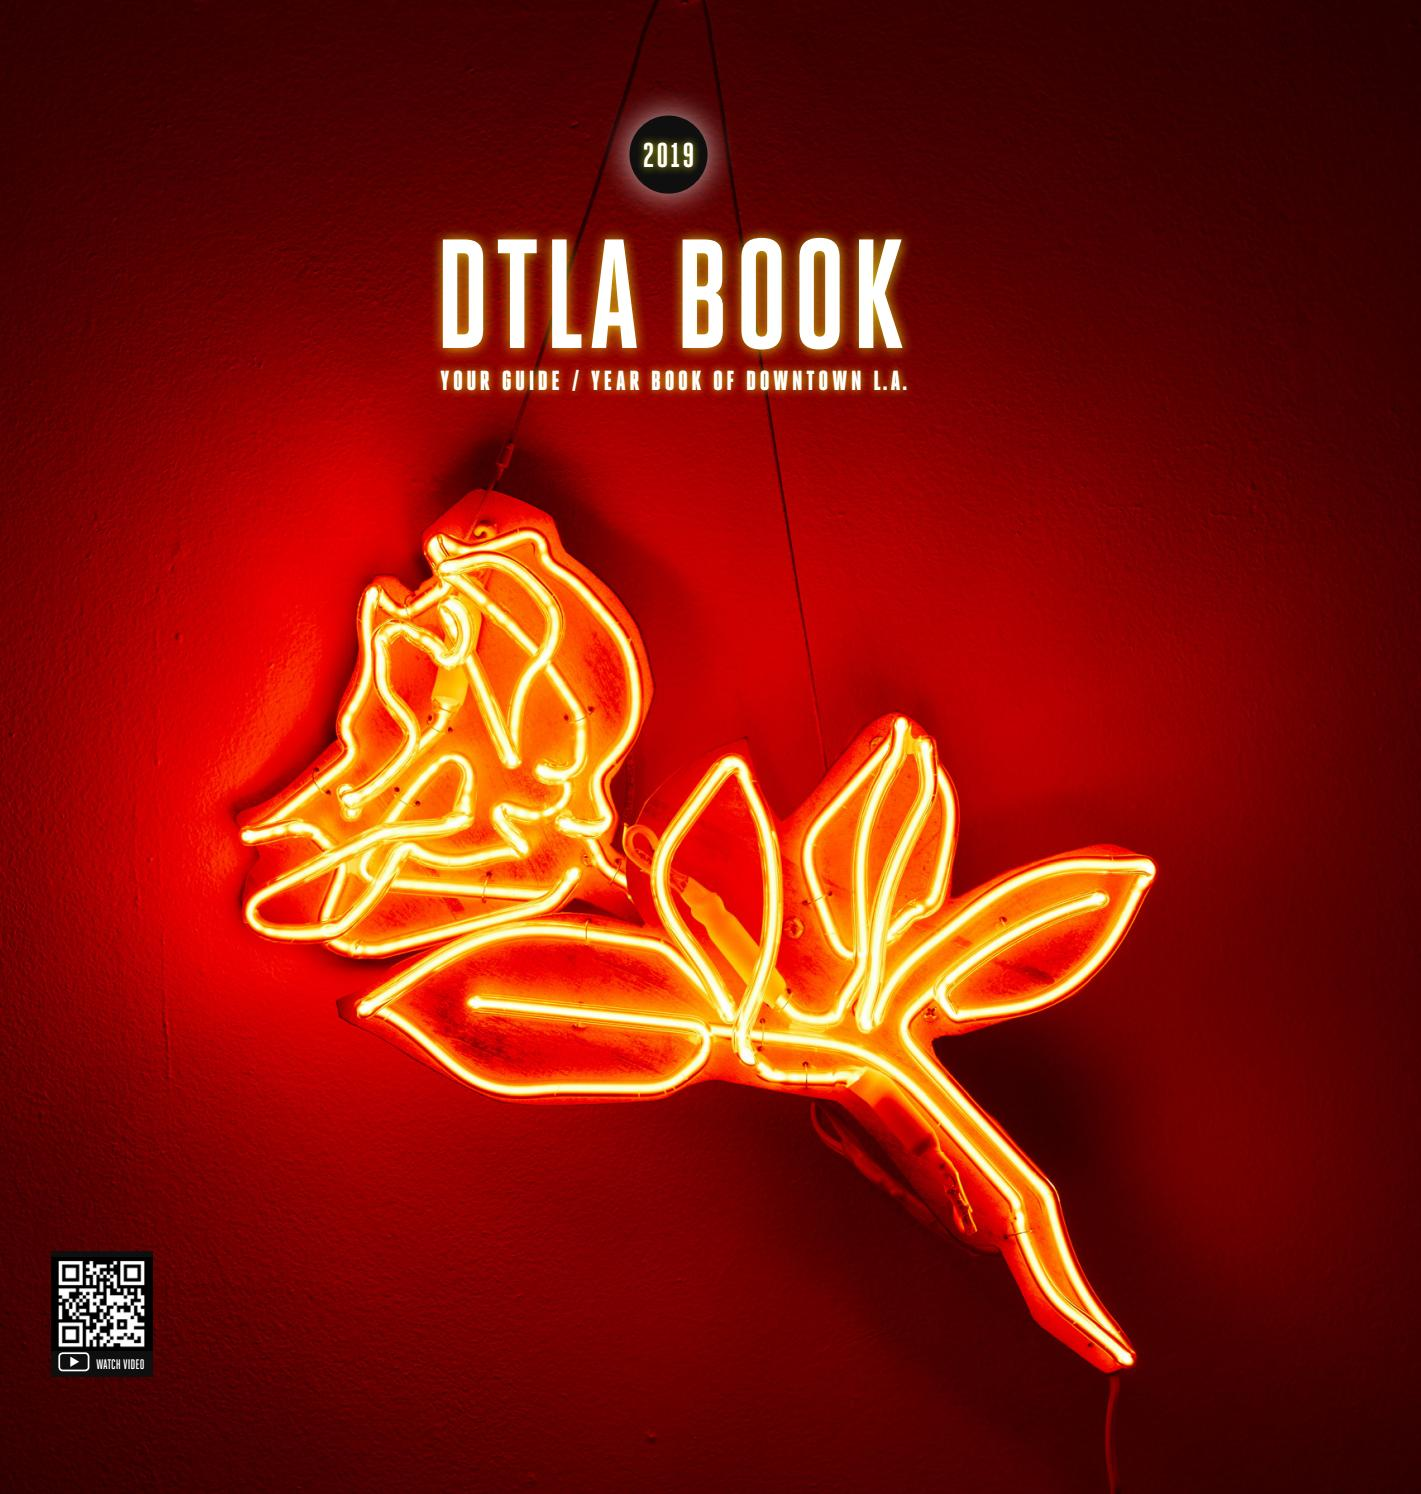 5eb99a779e7 DTLA Book 2019 (Digital Version) by District 8 Media - issuu